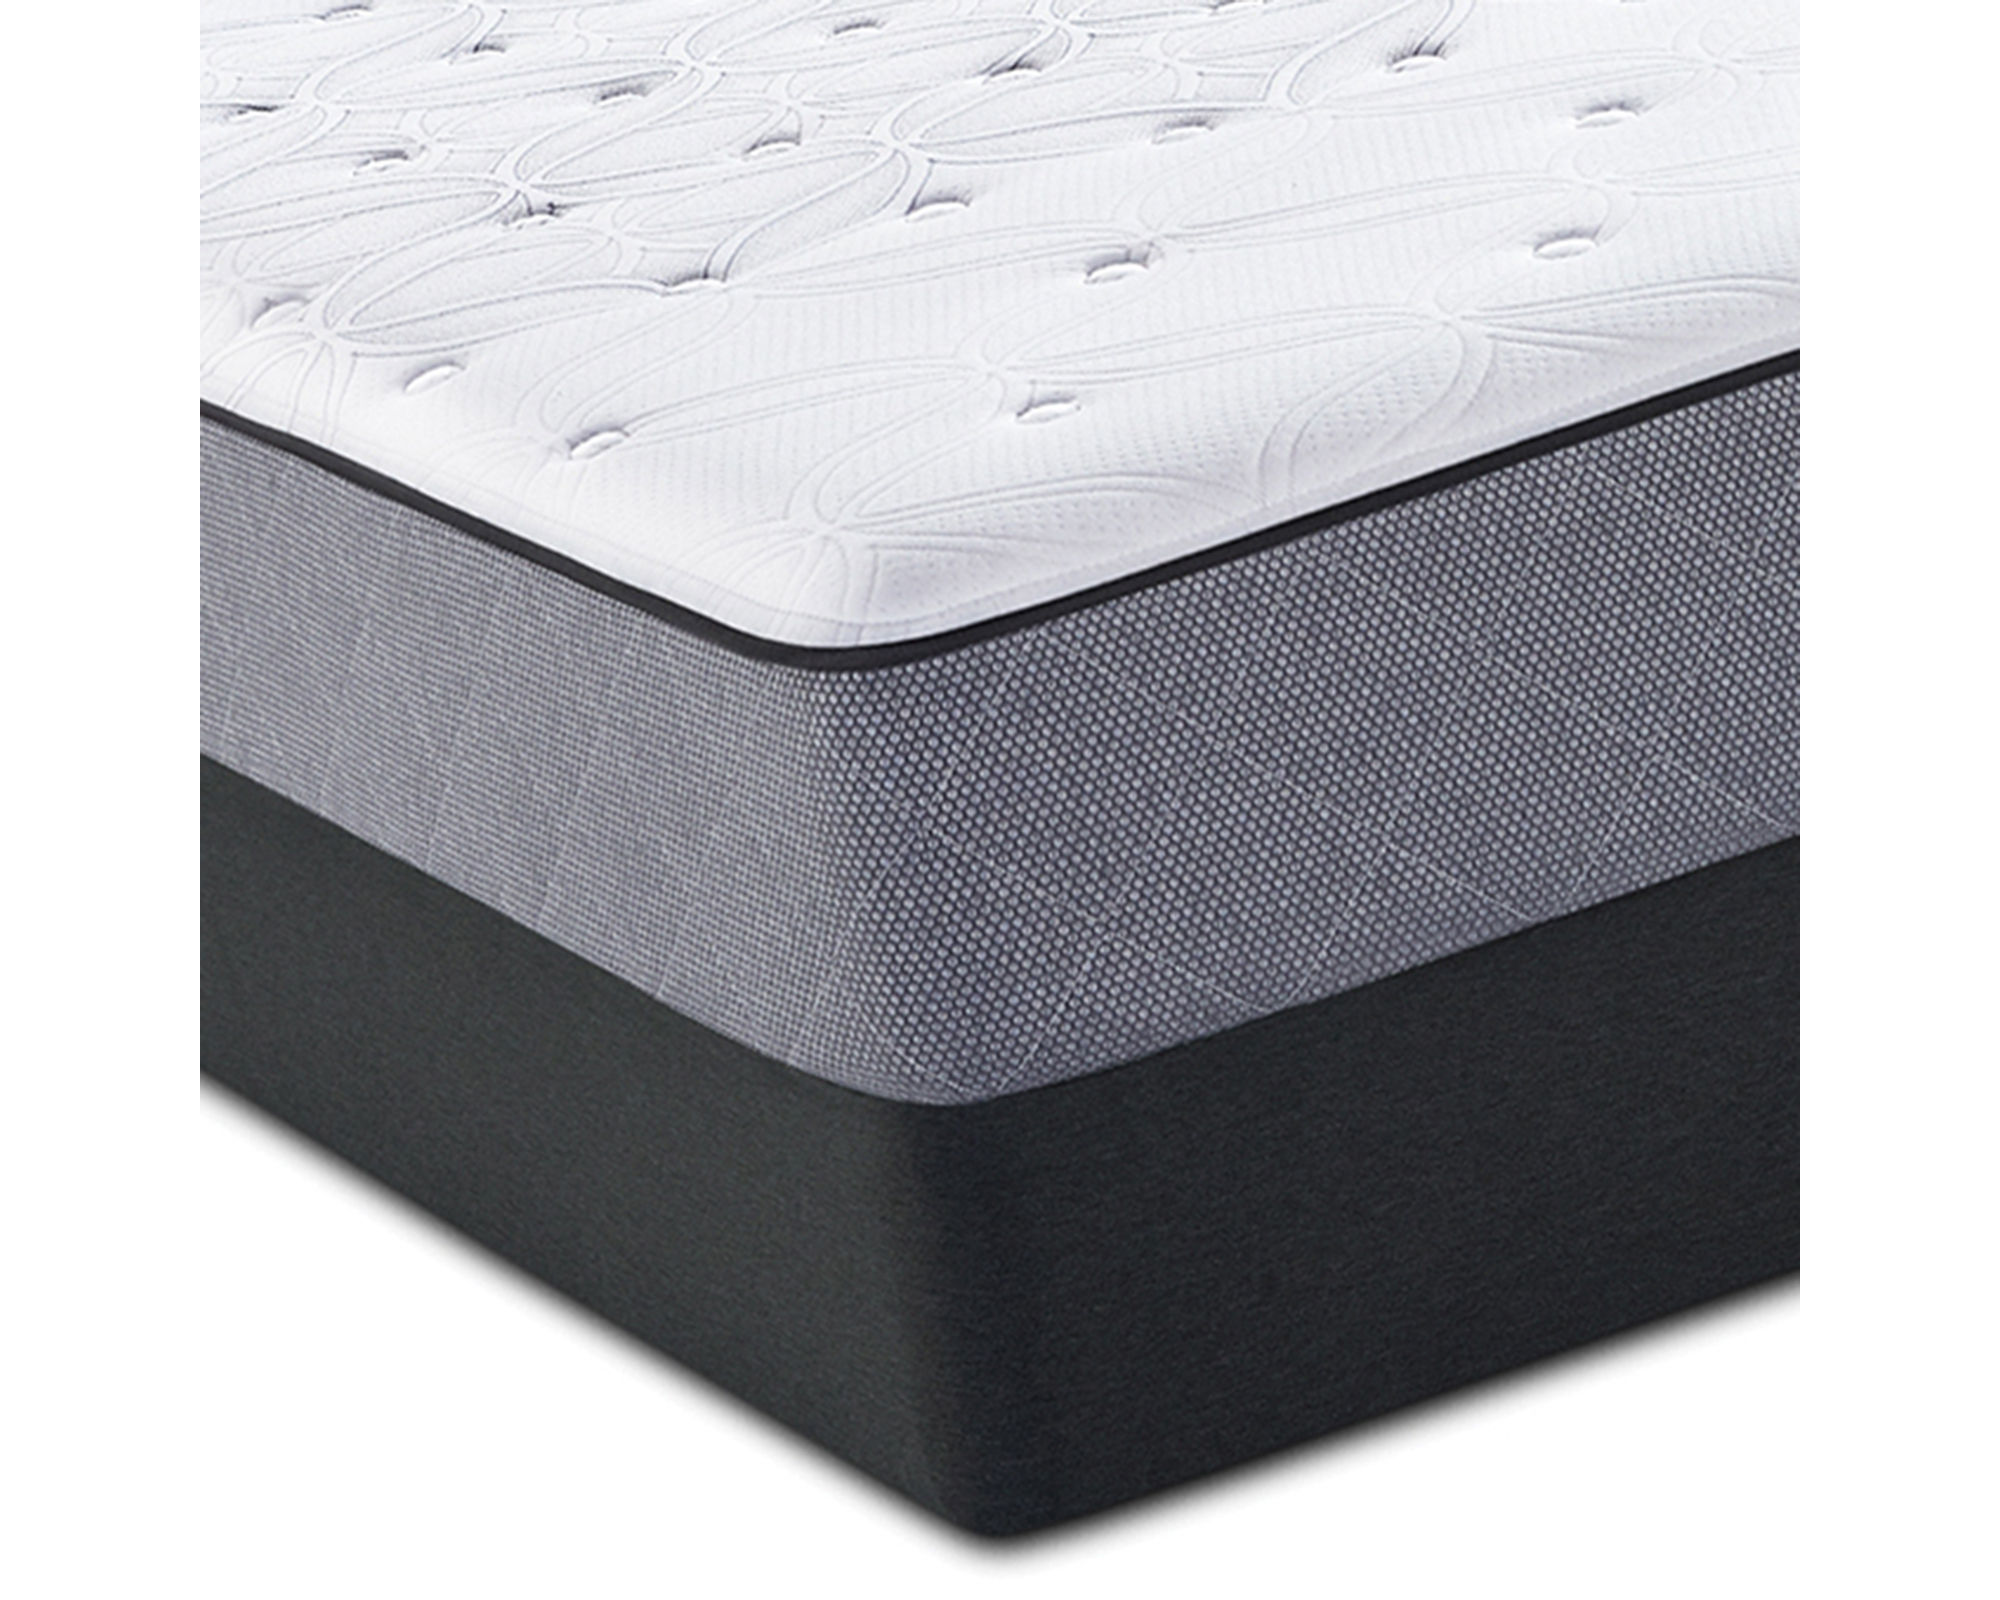 Twin Mattress And Box Spring - Search